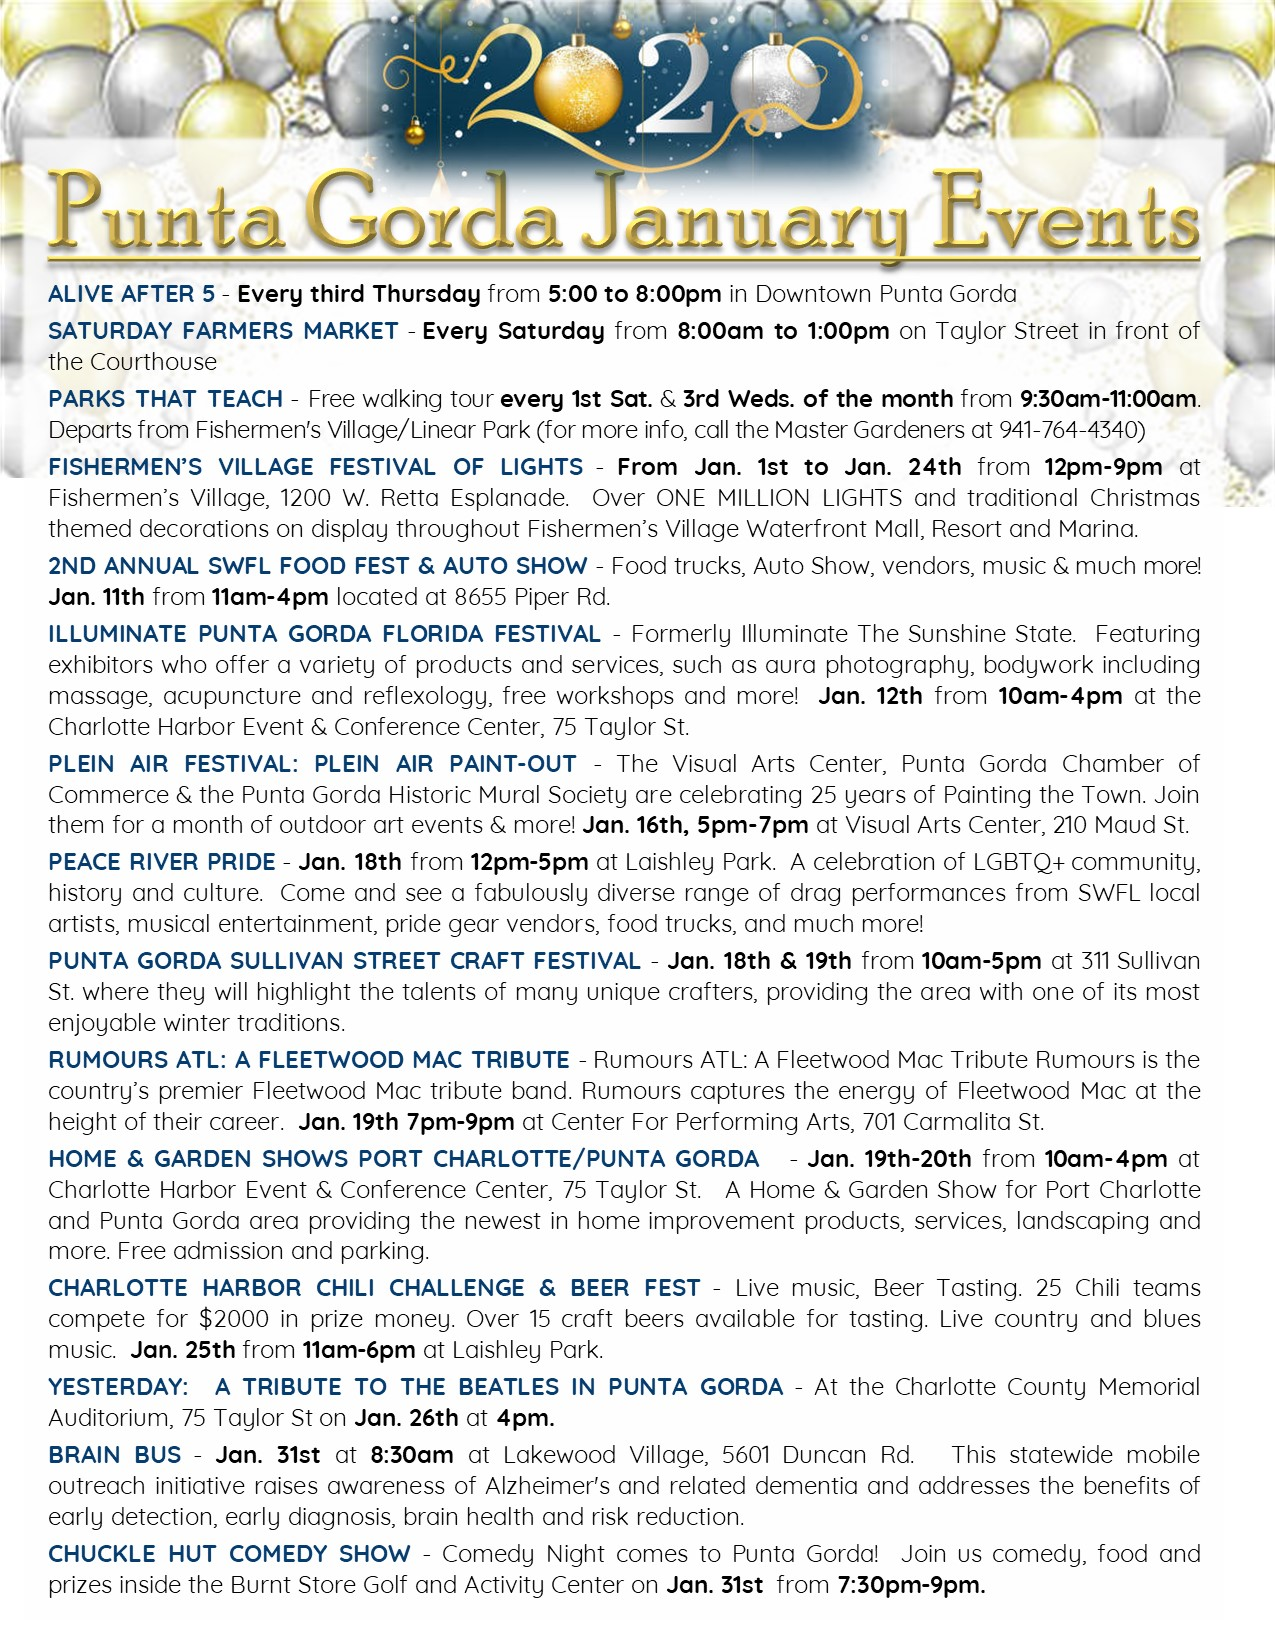 Punta Gorda January Events